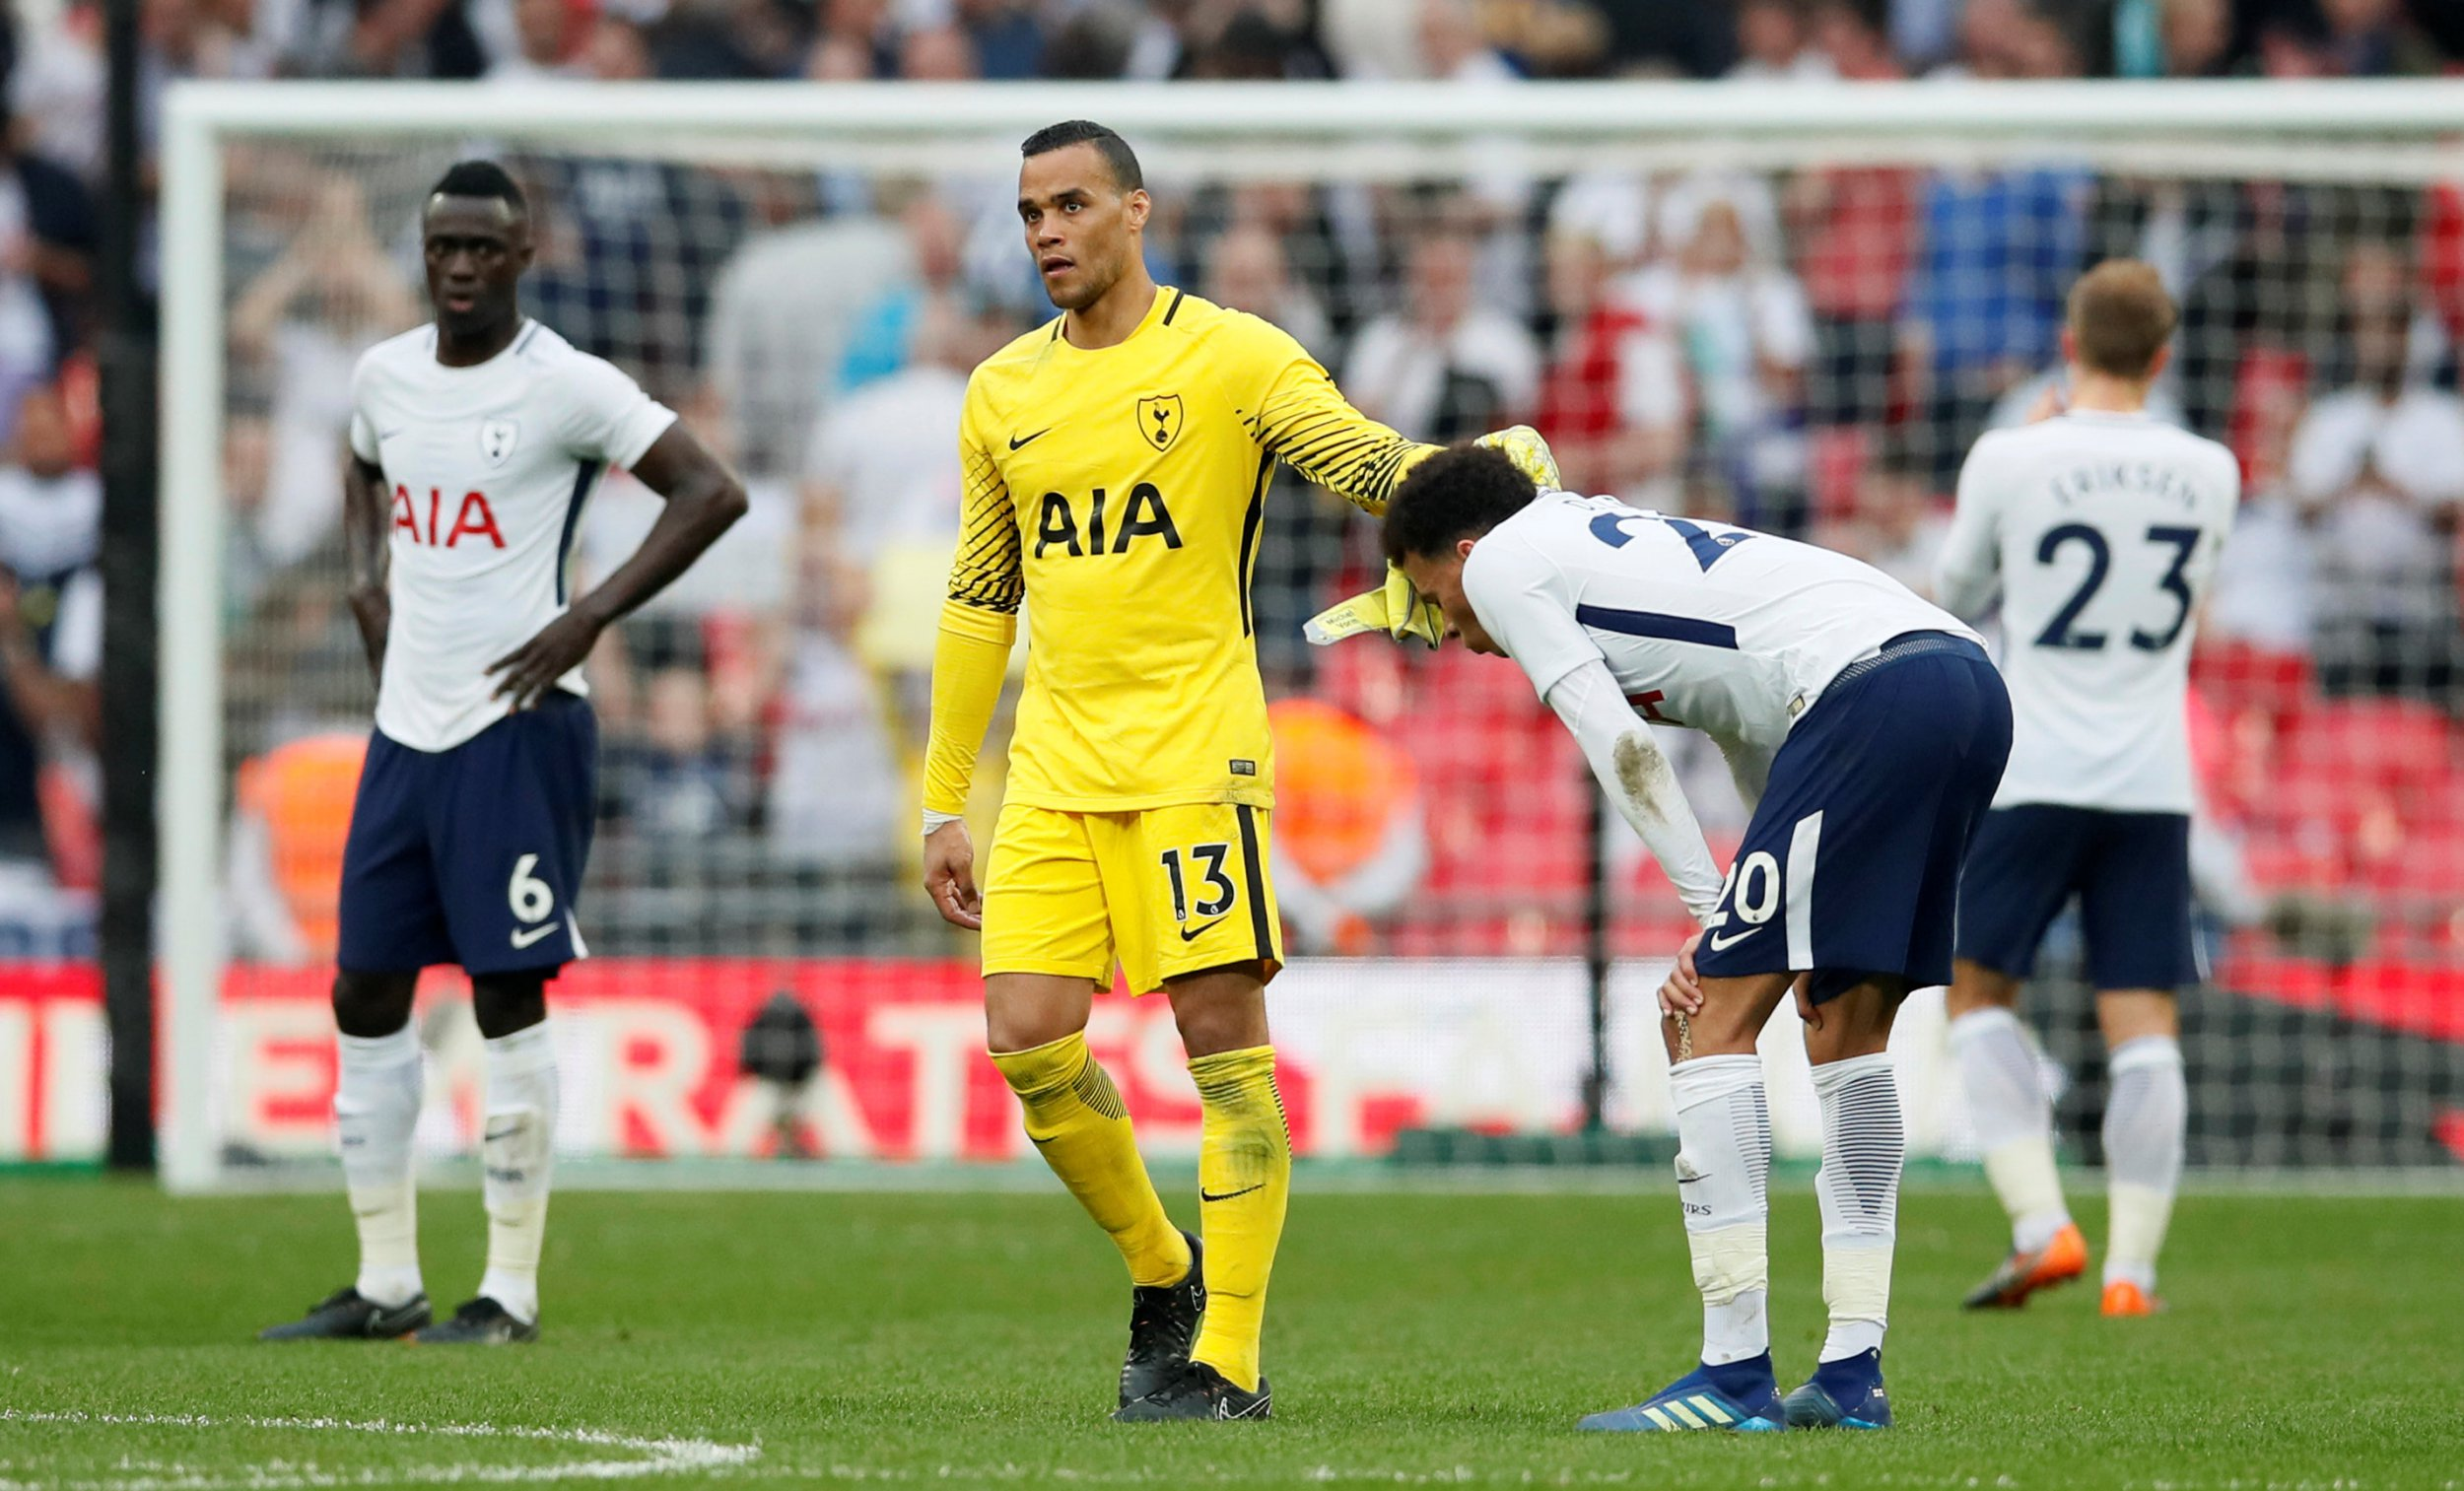 Mauricio Pochettino defends Michel Vorm decision after FA Cup heartbreak